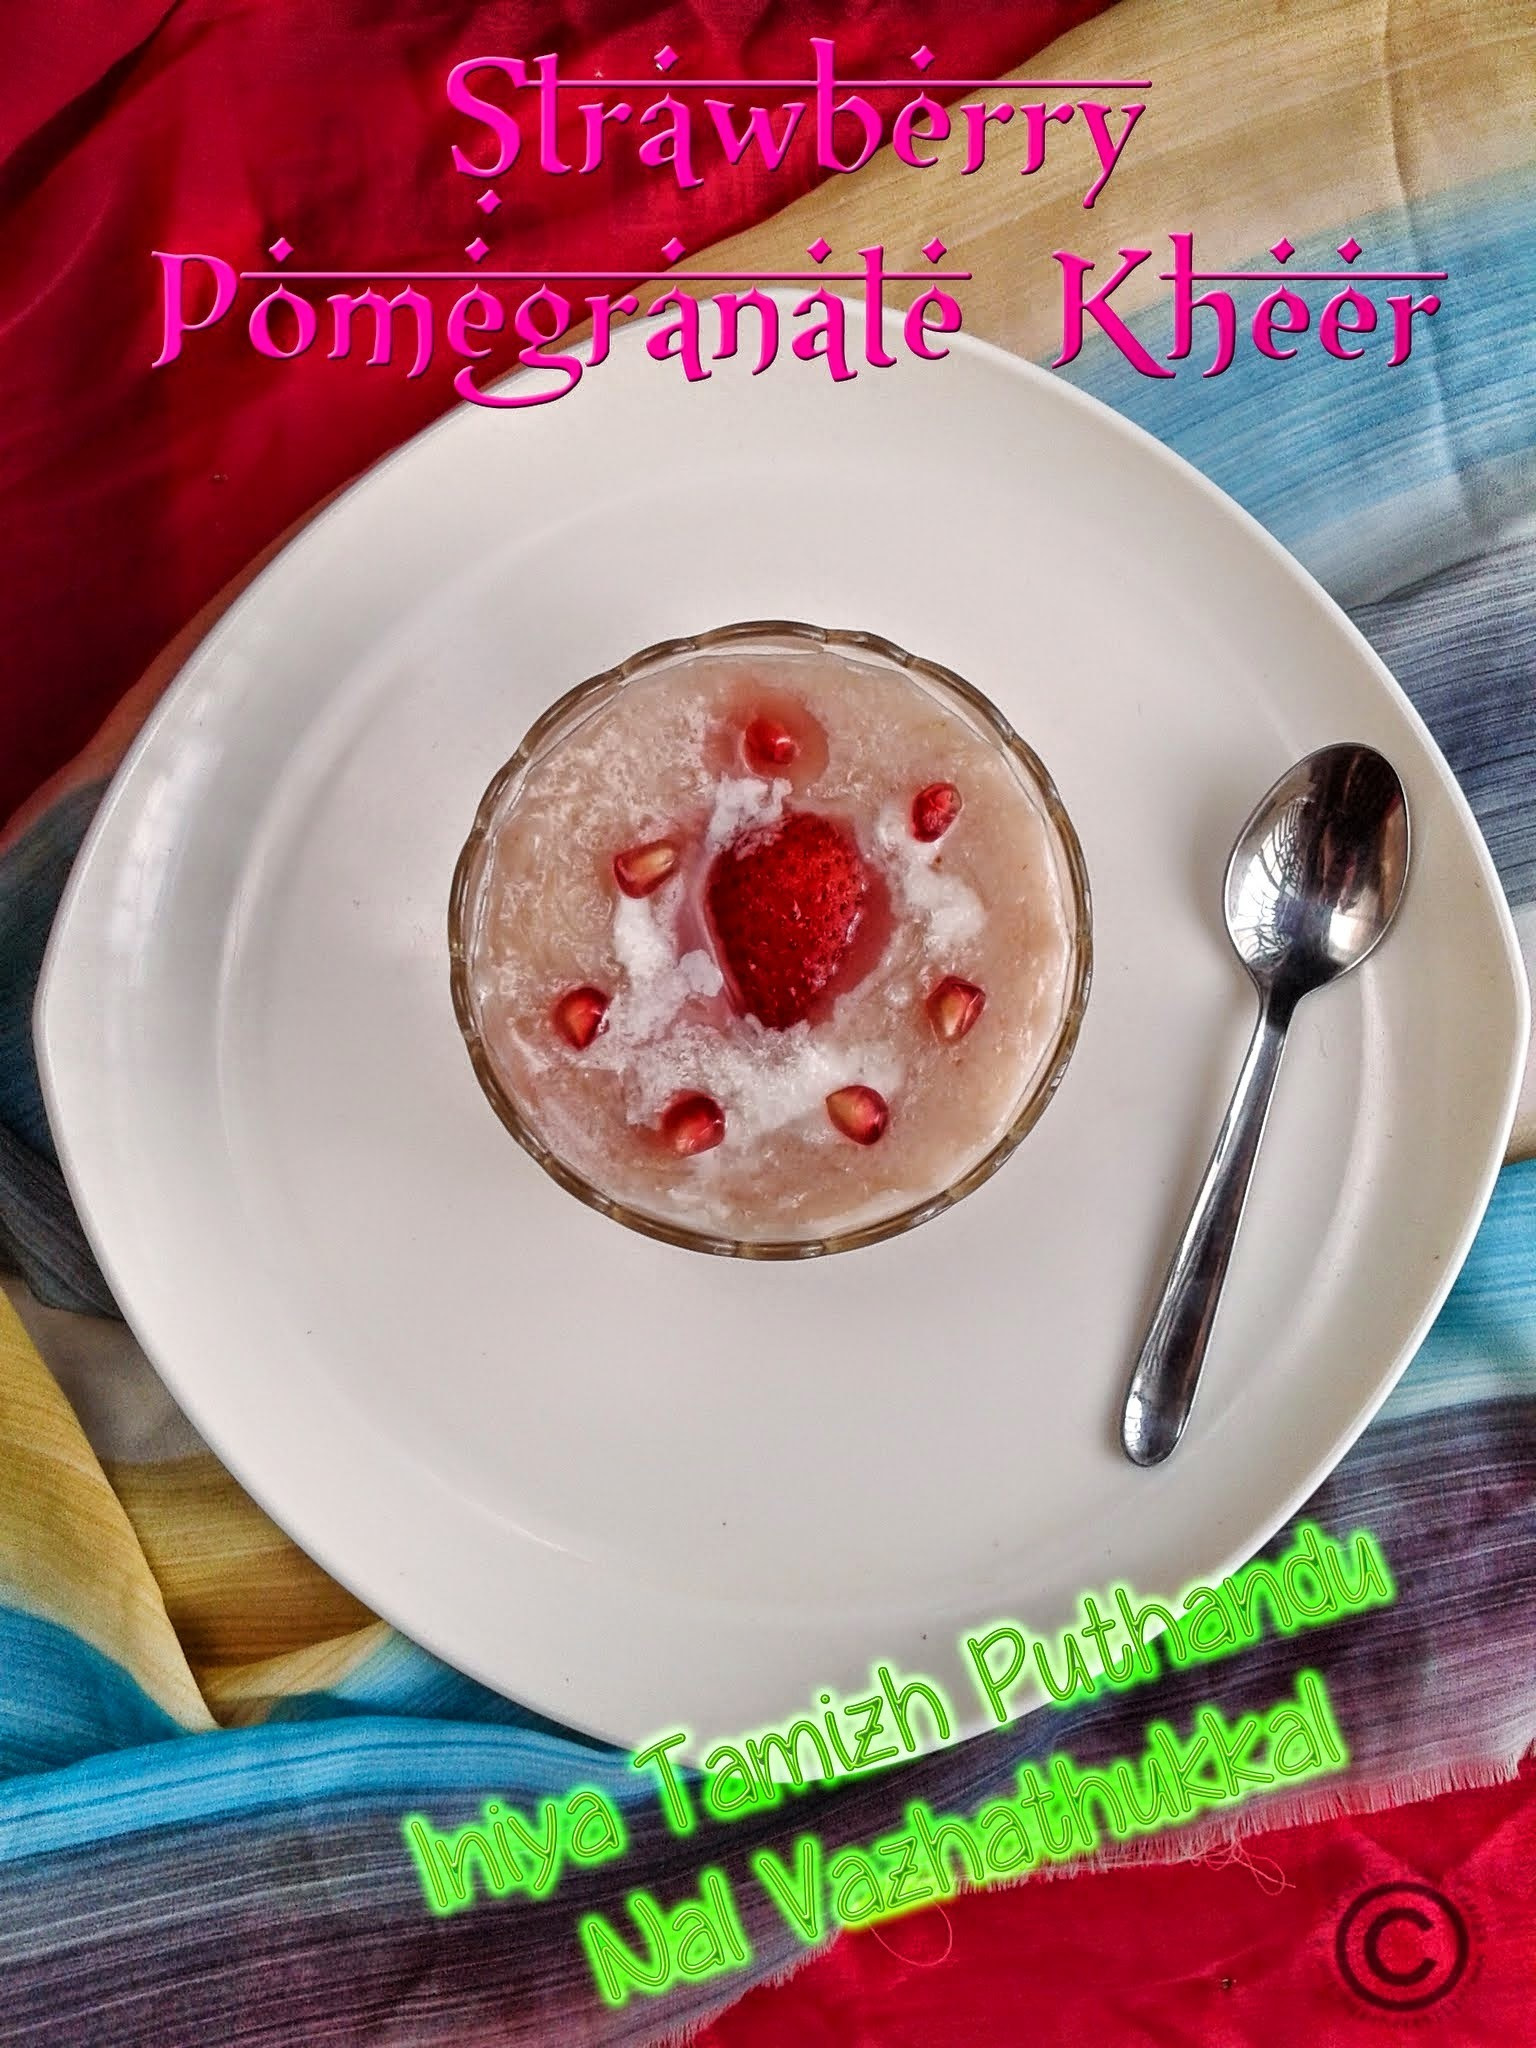 STRAWBERRY POMEGRANATE KHEER I FRUIT DESSERTS I PAYASAM RECIPES